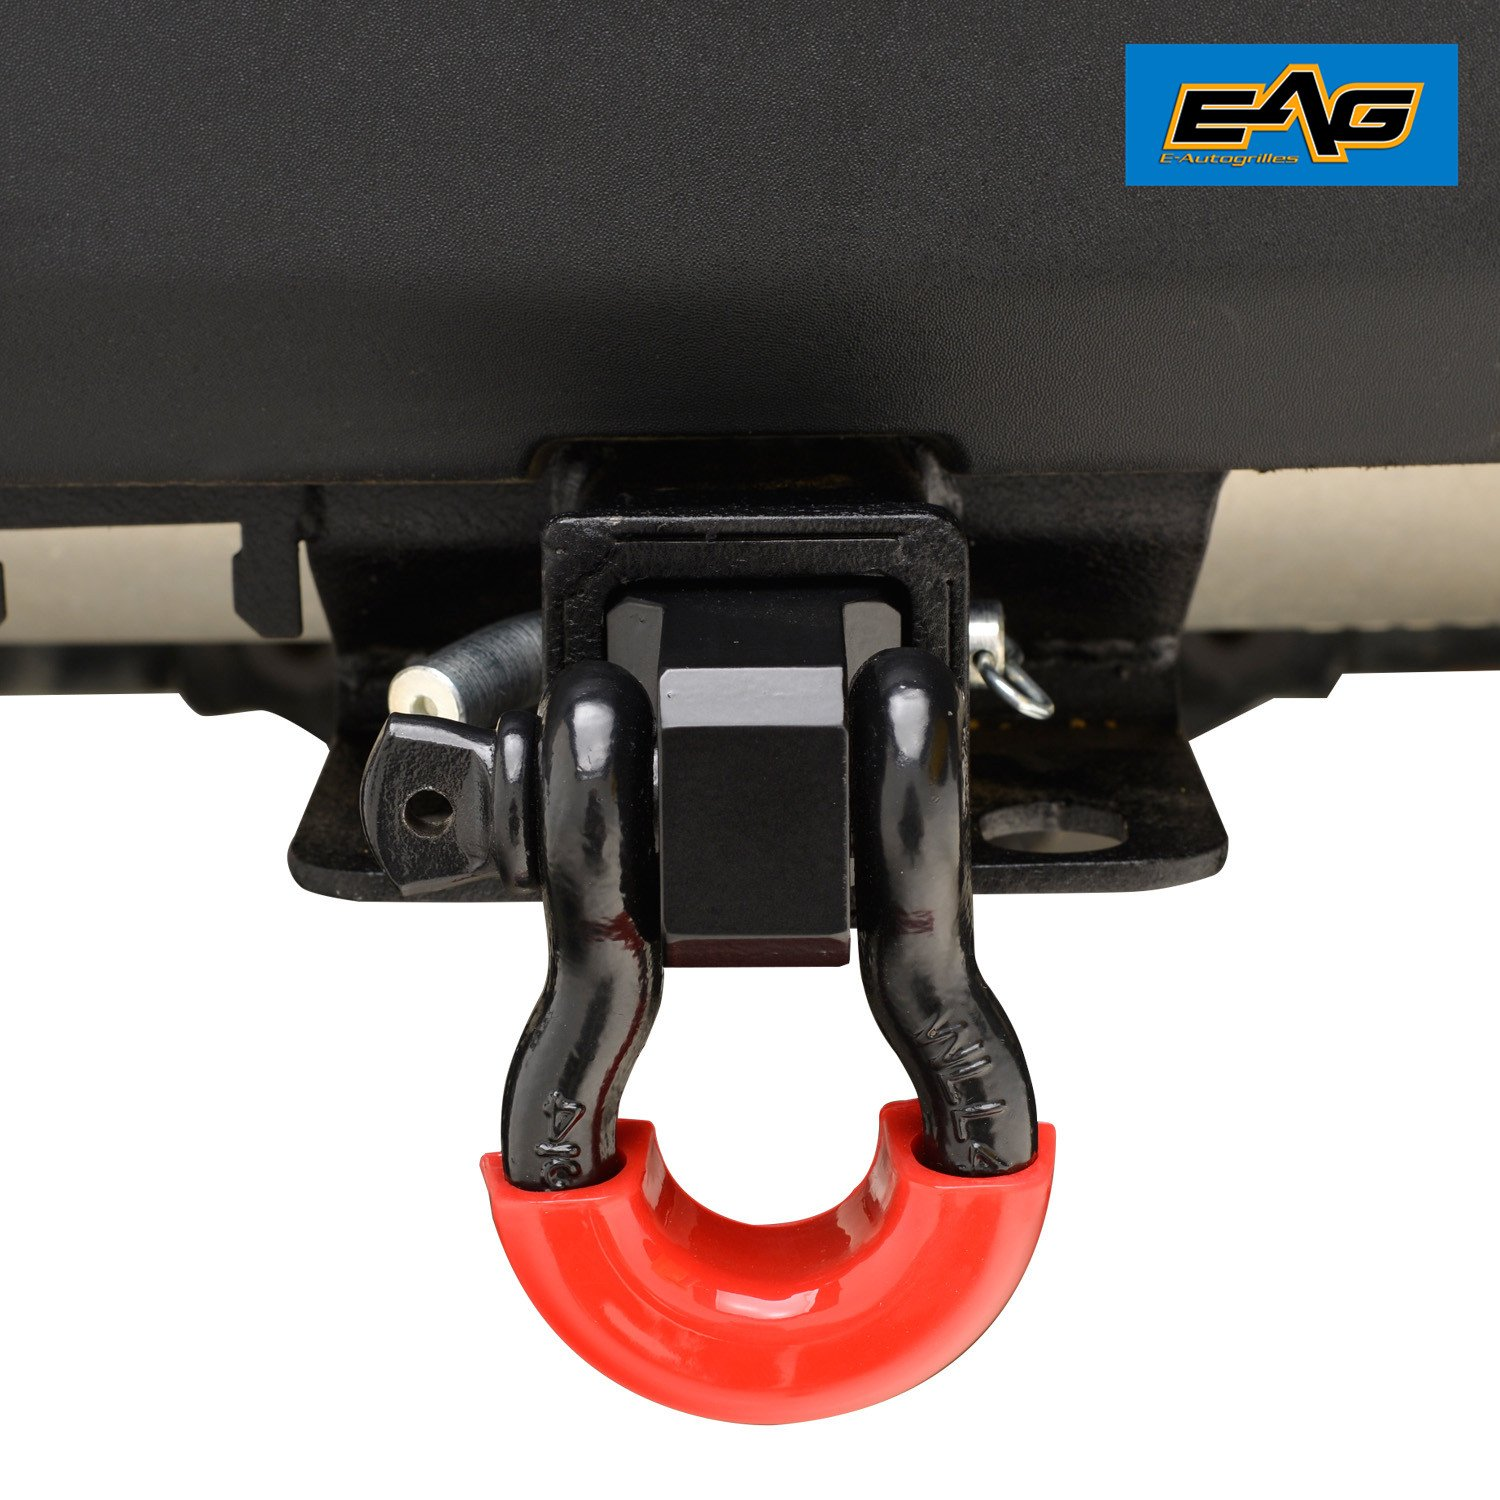 EAG Receiver Hitch D-ring with 3/4'' Shackle for 2'' Receivers Includes Red D-ring Isolators and Hitch Pin